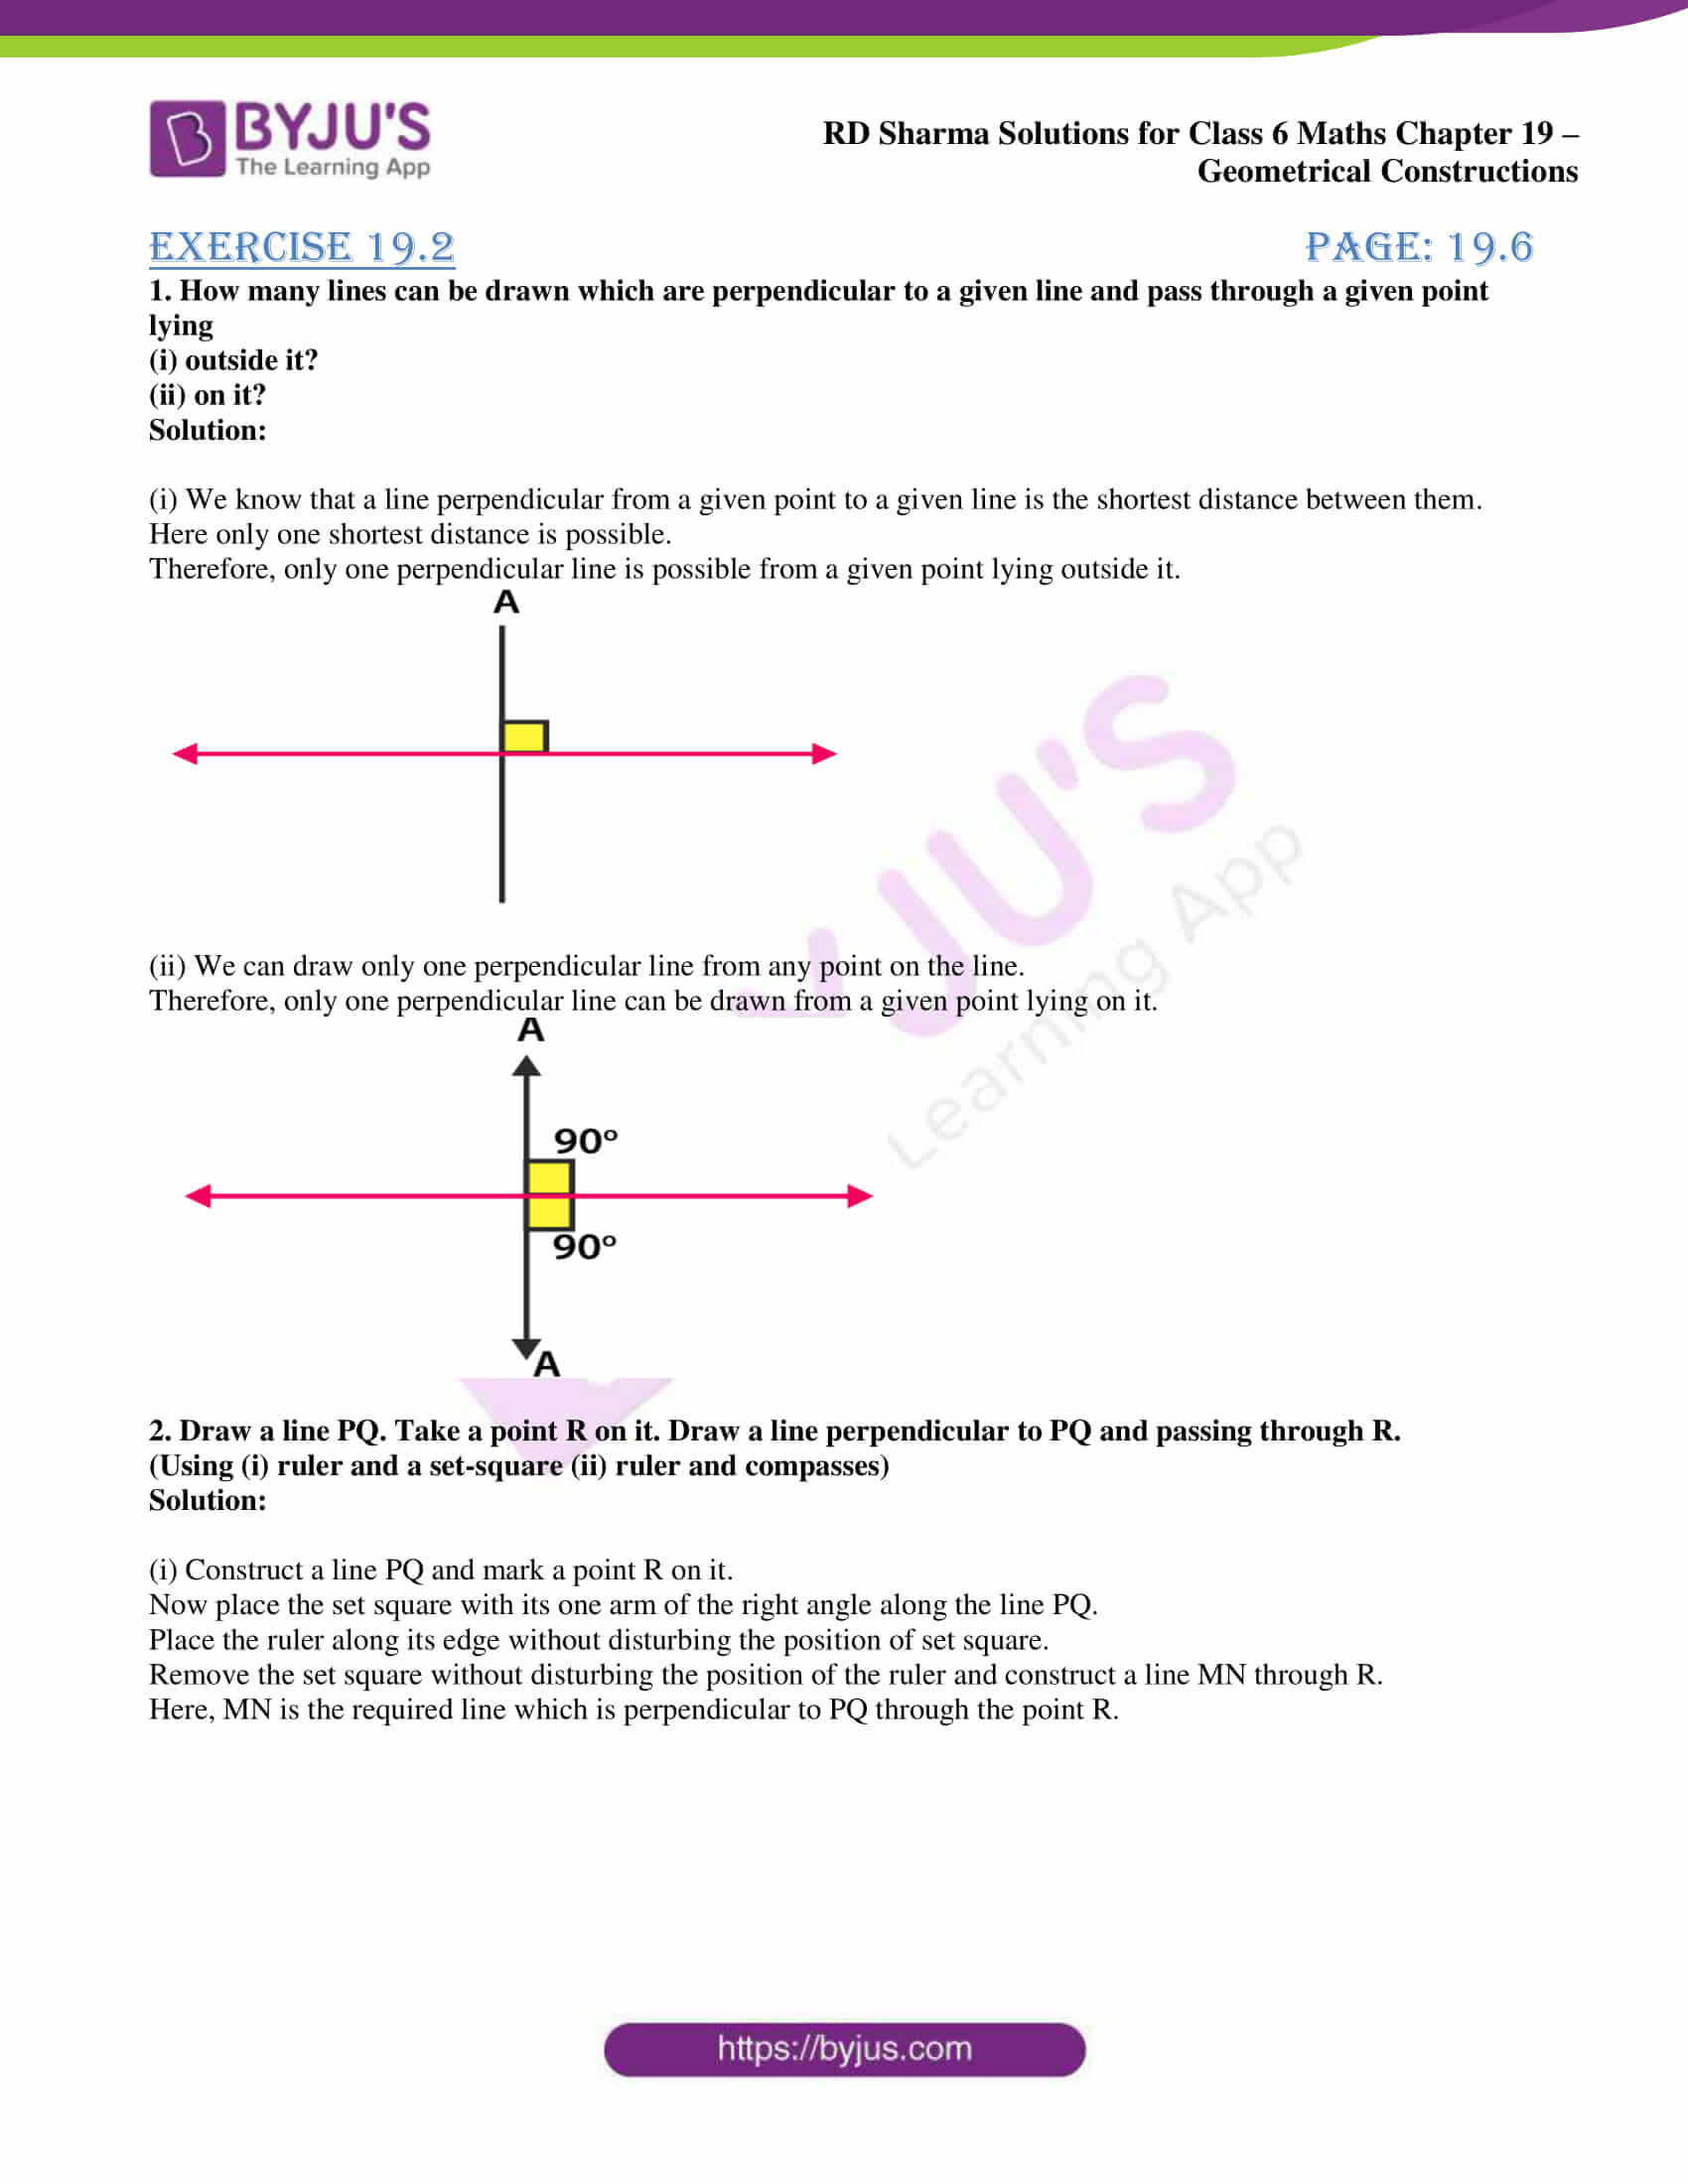 rd sharma solutions nov2020 class 6 maths chapter 19 exercise 2 1